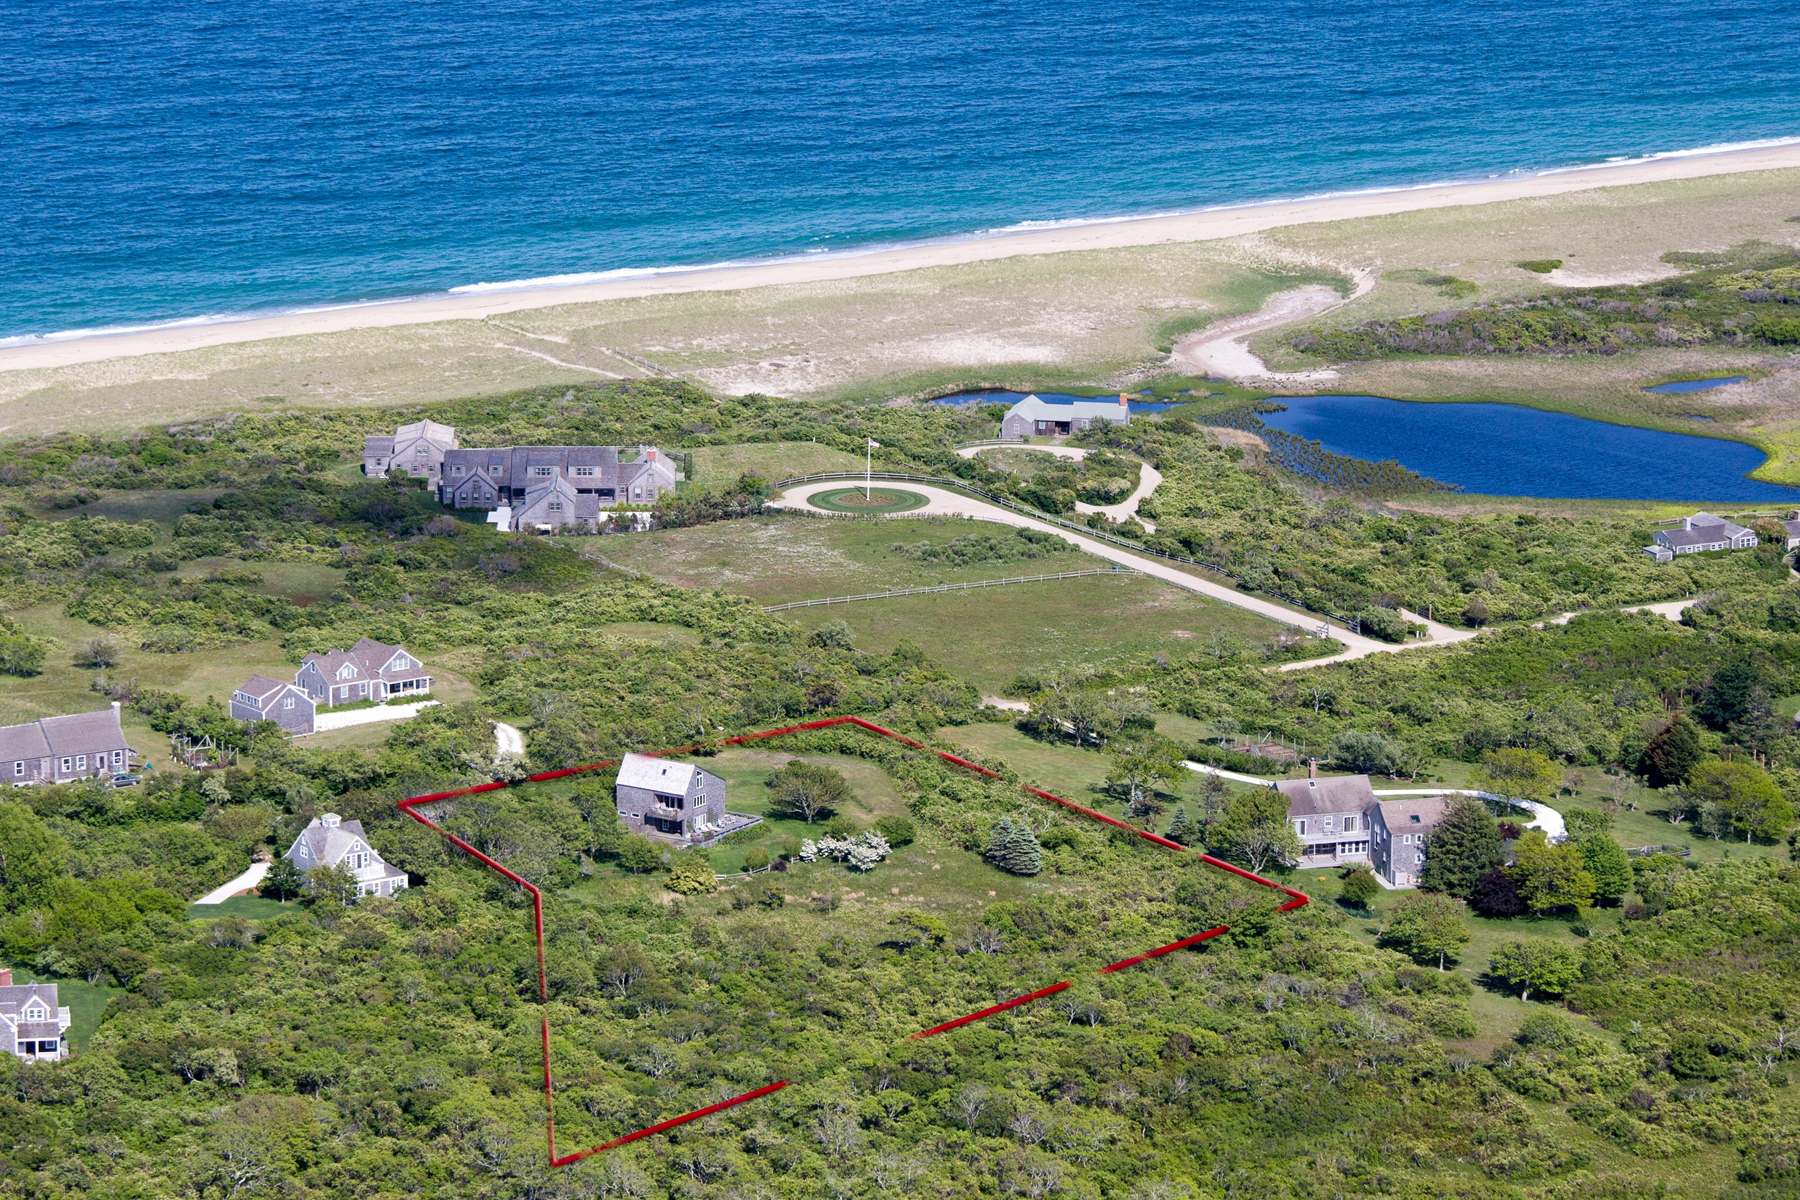 단독 가정 주택 용 매매 에 Gorgeous Unobstructed Water Views! 56 Squam Road 58 Squam Road Nantucket, 매사추세츠, 02554 미국